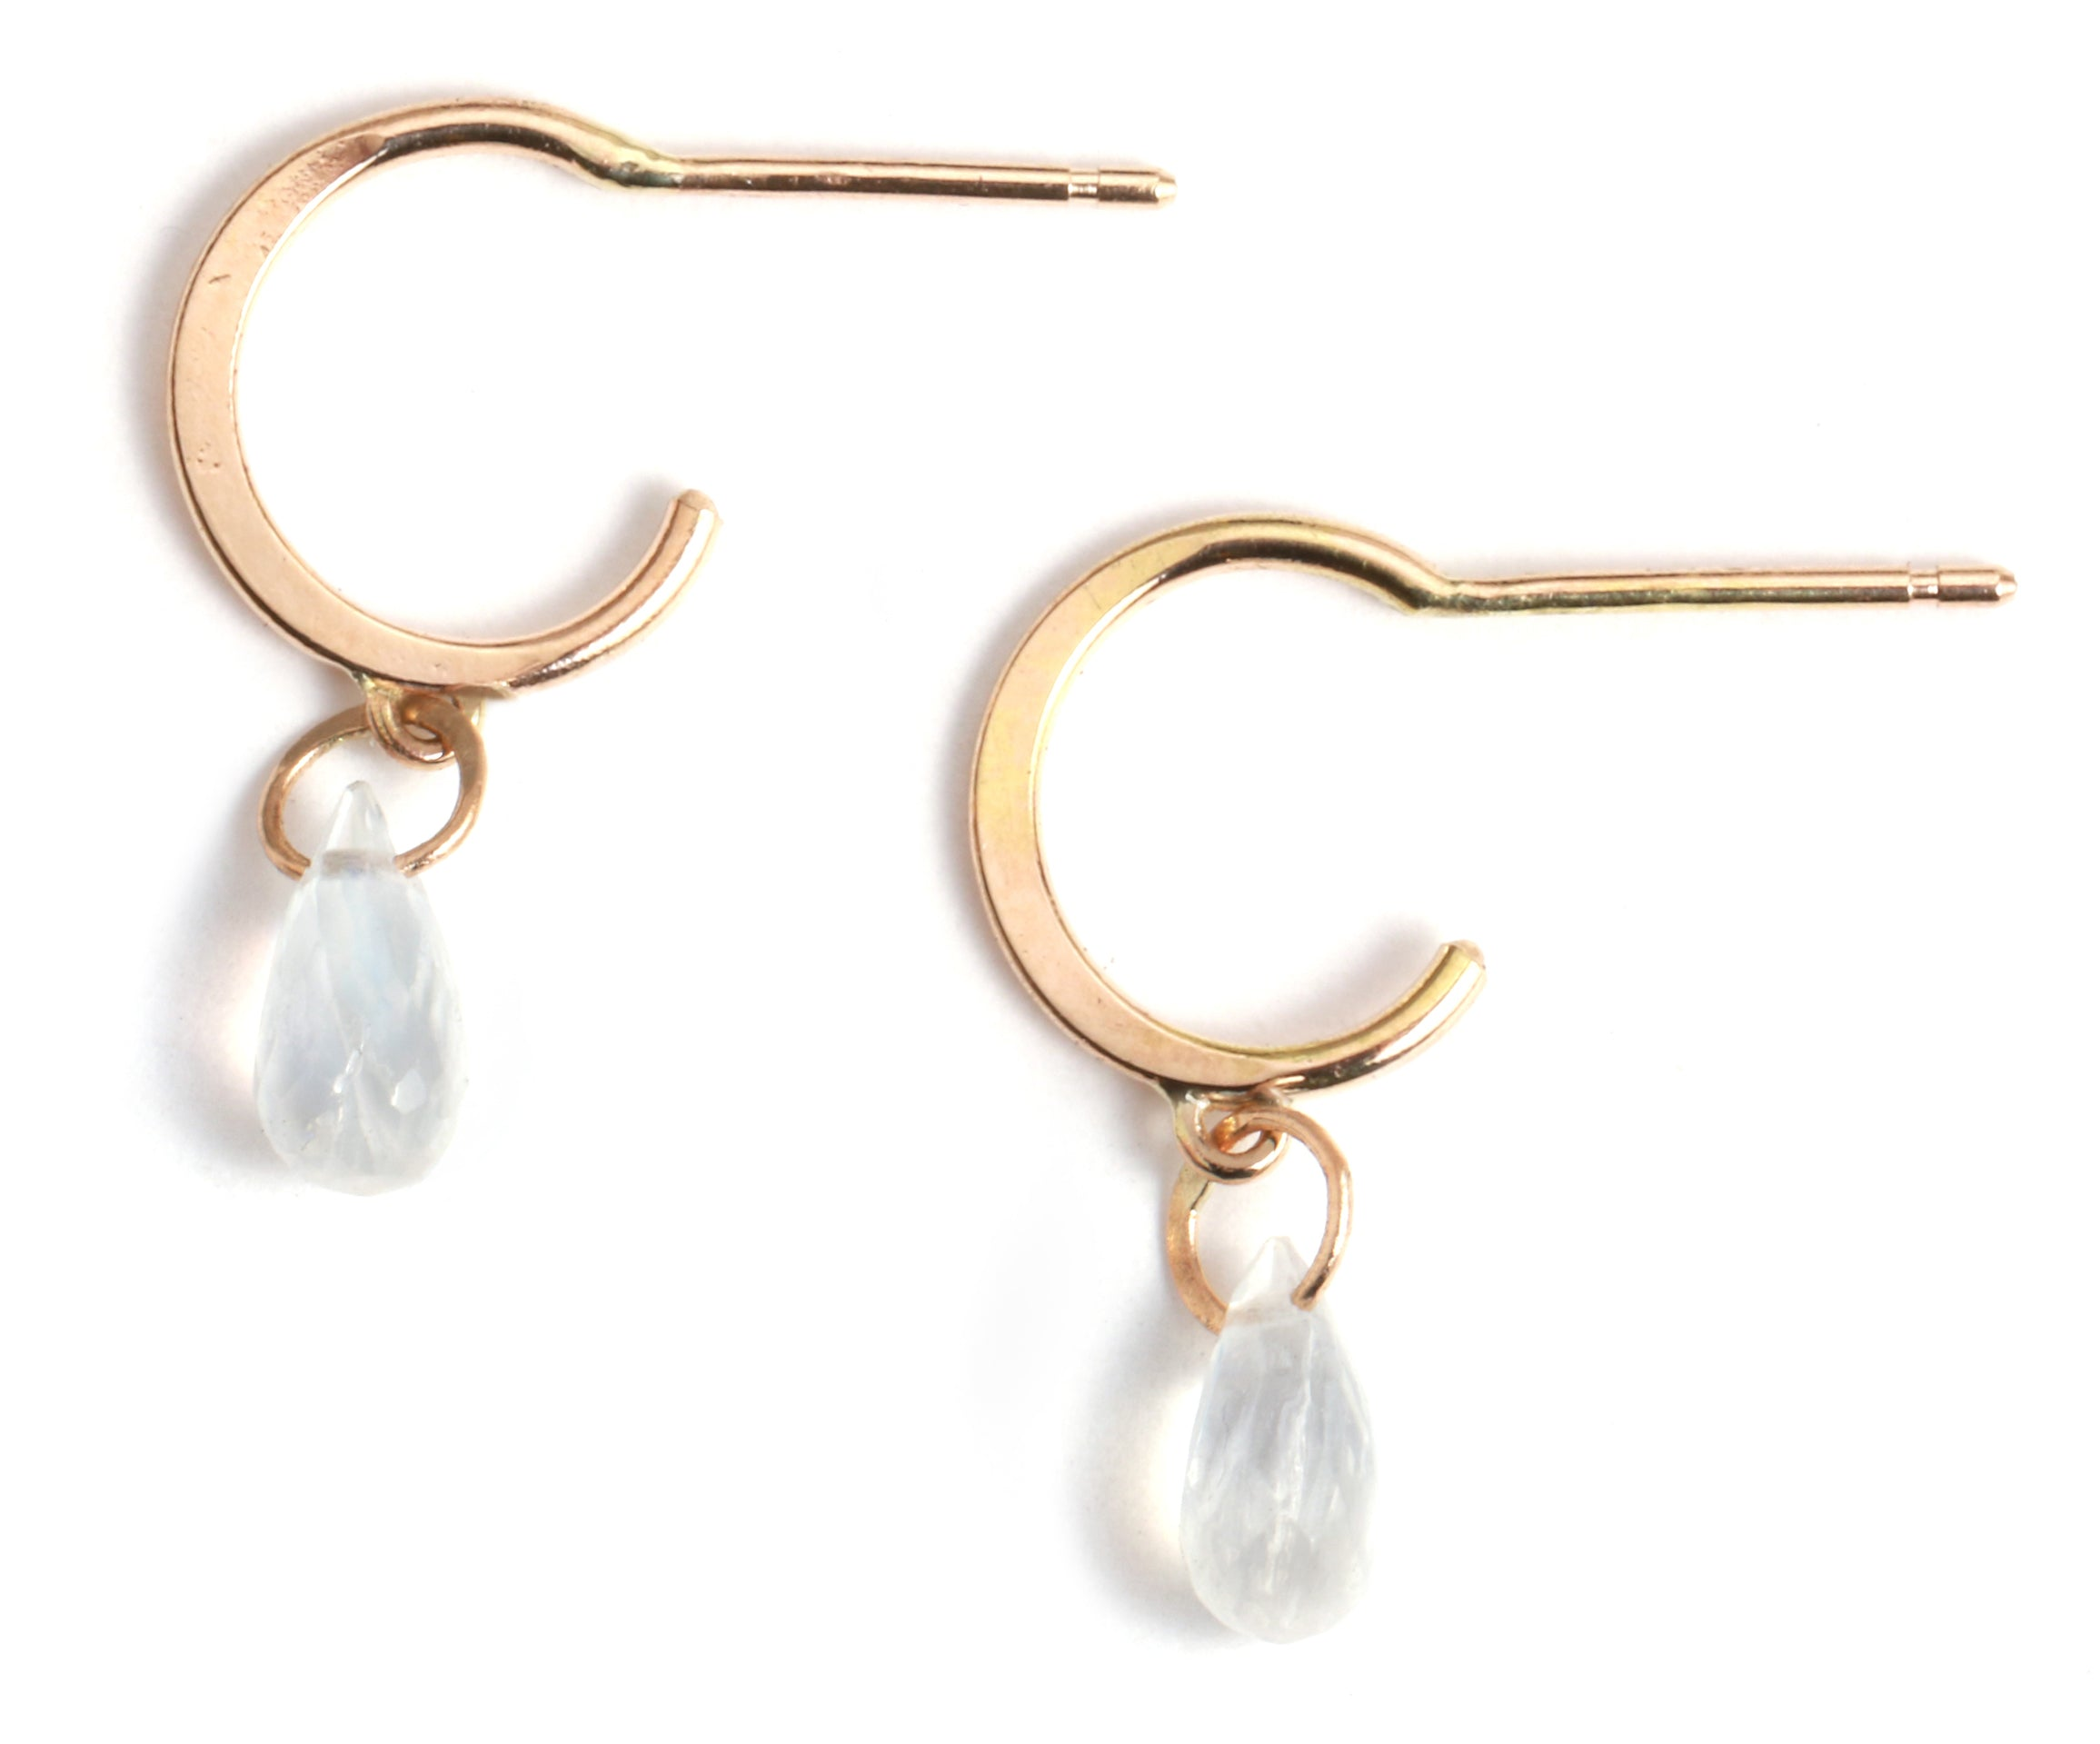 Tiny Hoop Earrings with Moonstone Drops